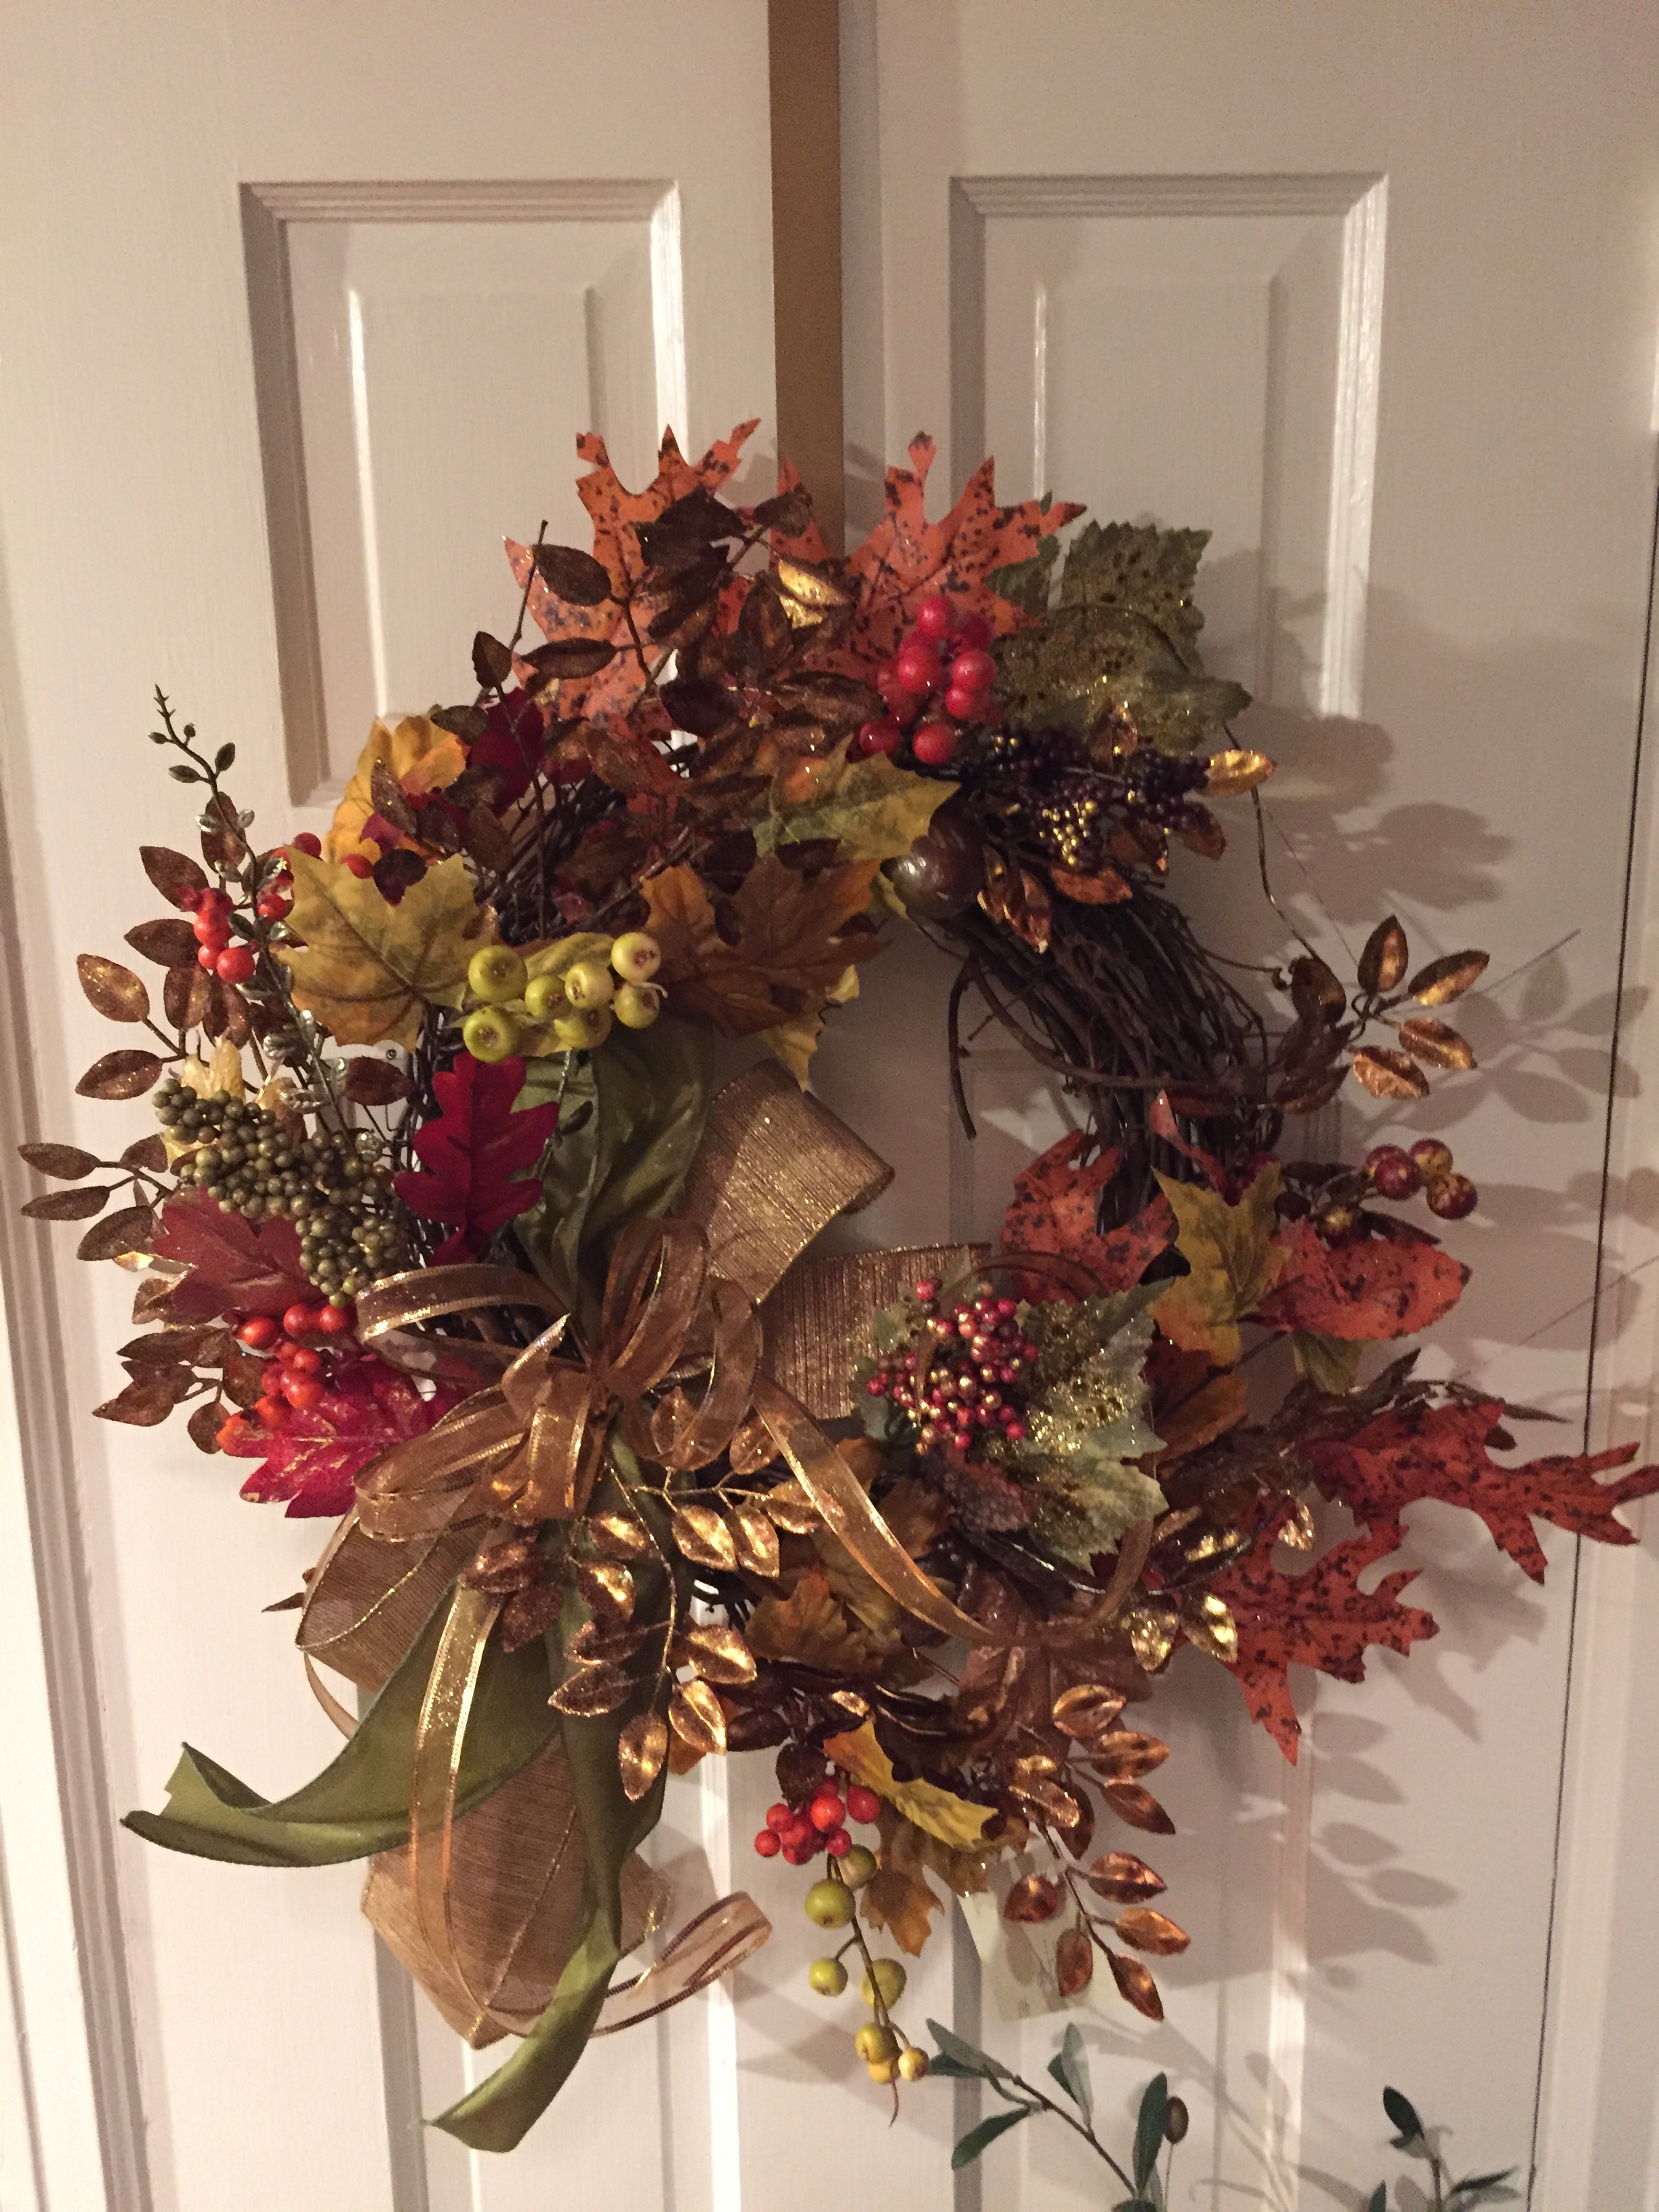 Wreaths and Swags - Wreaths and swags are an easy , simple way to enhance any home decor. Wreaths and swags can be purchased in every price range, already made or custom designed. They are available for any color palette, season or holiday. It is easy to change them out as the seasons change.